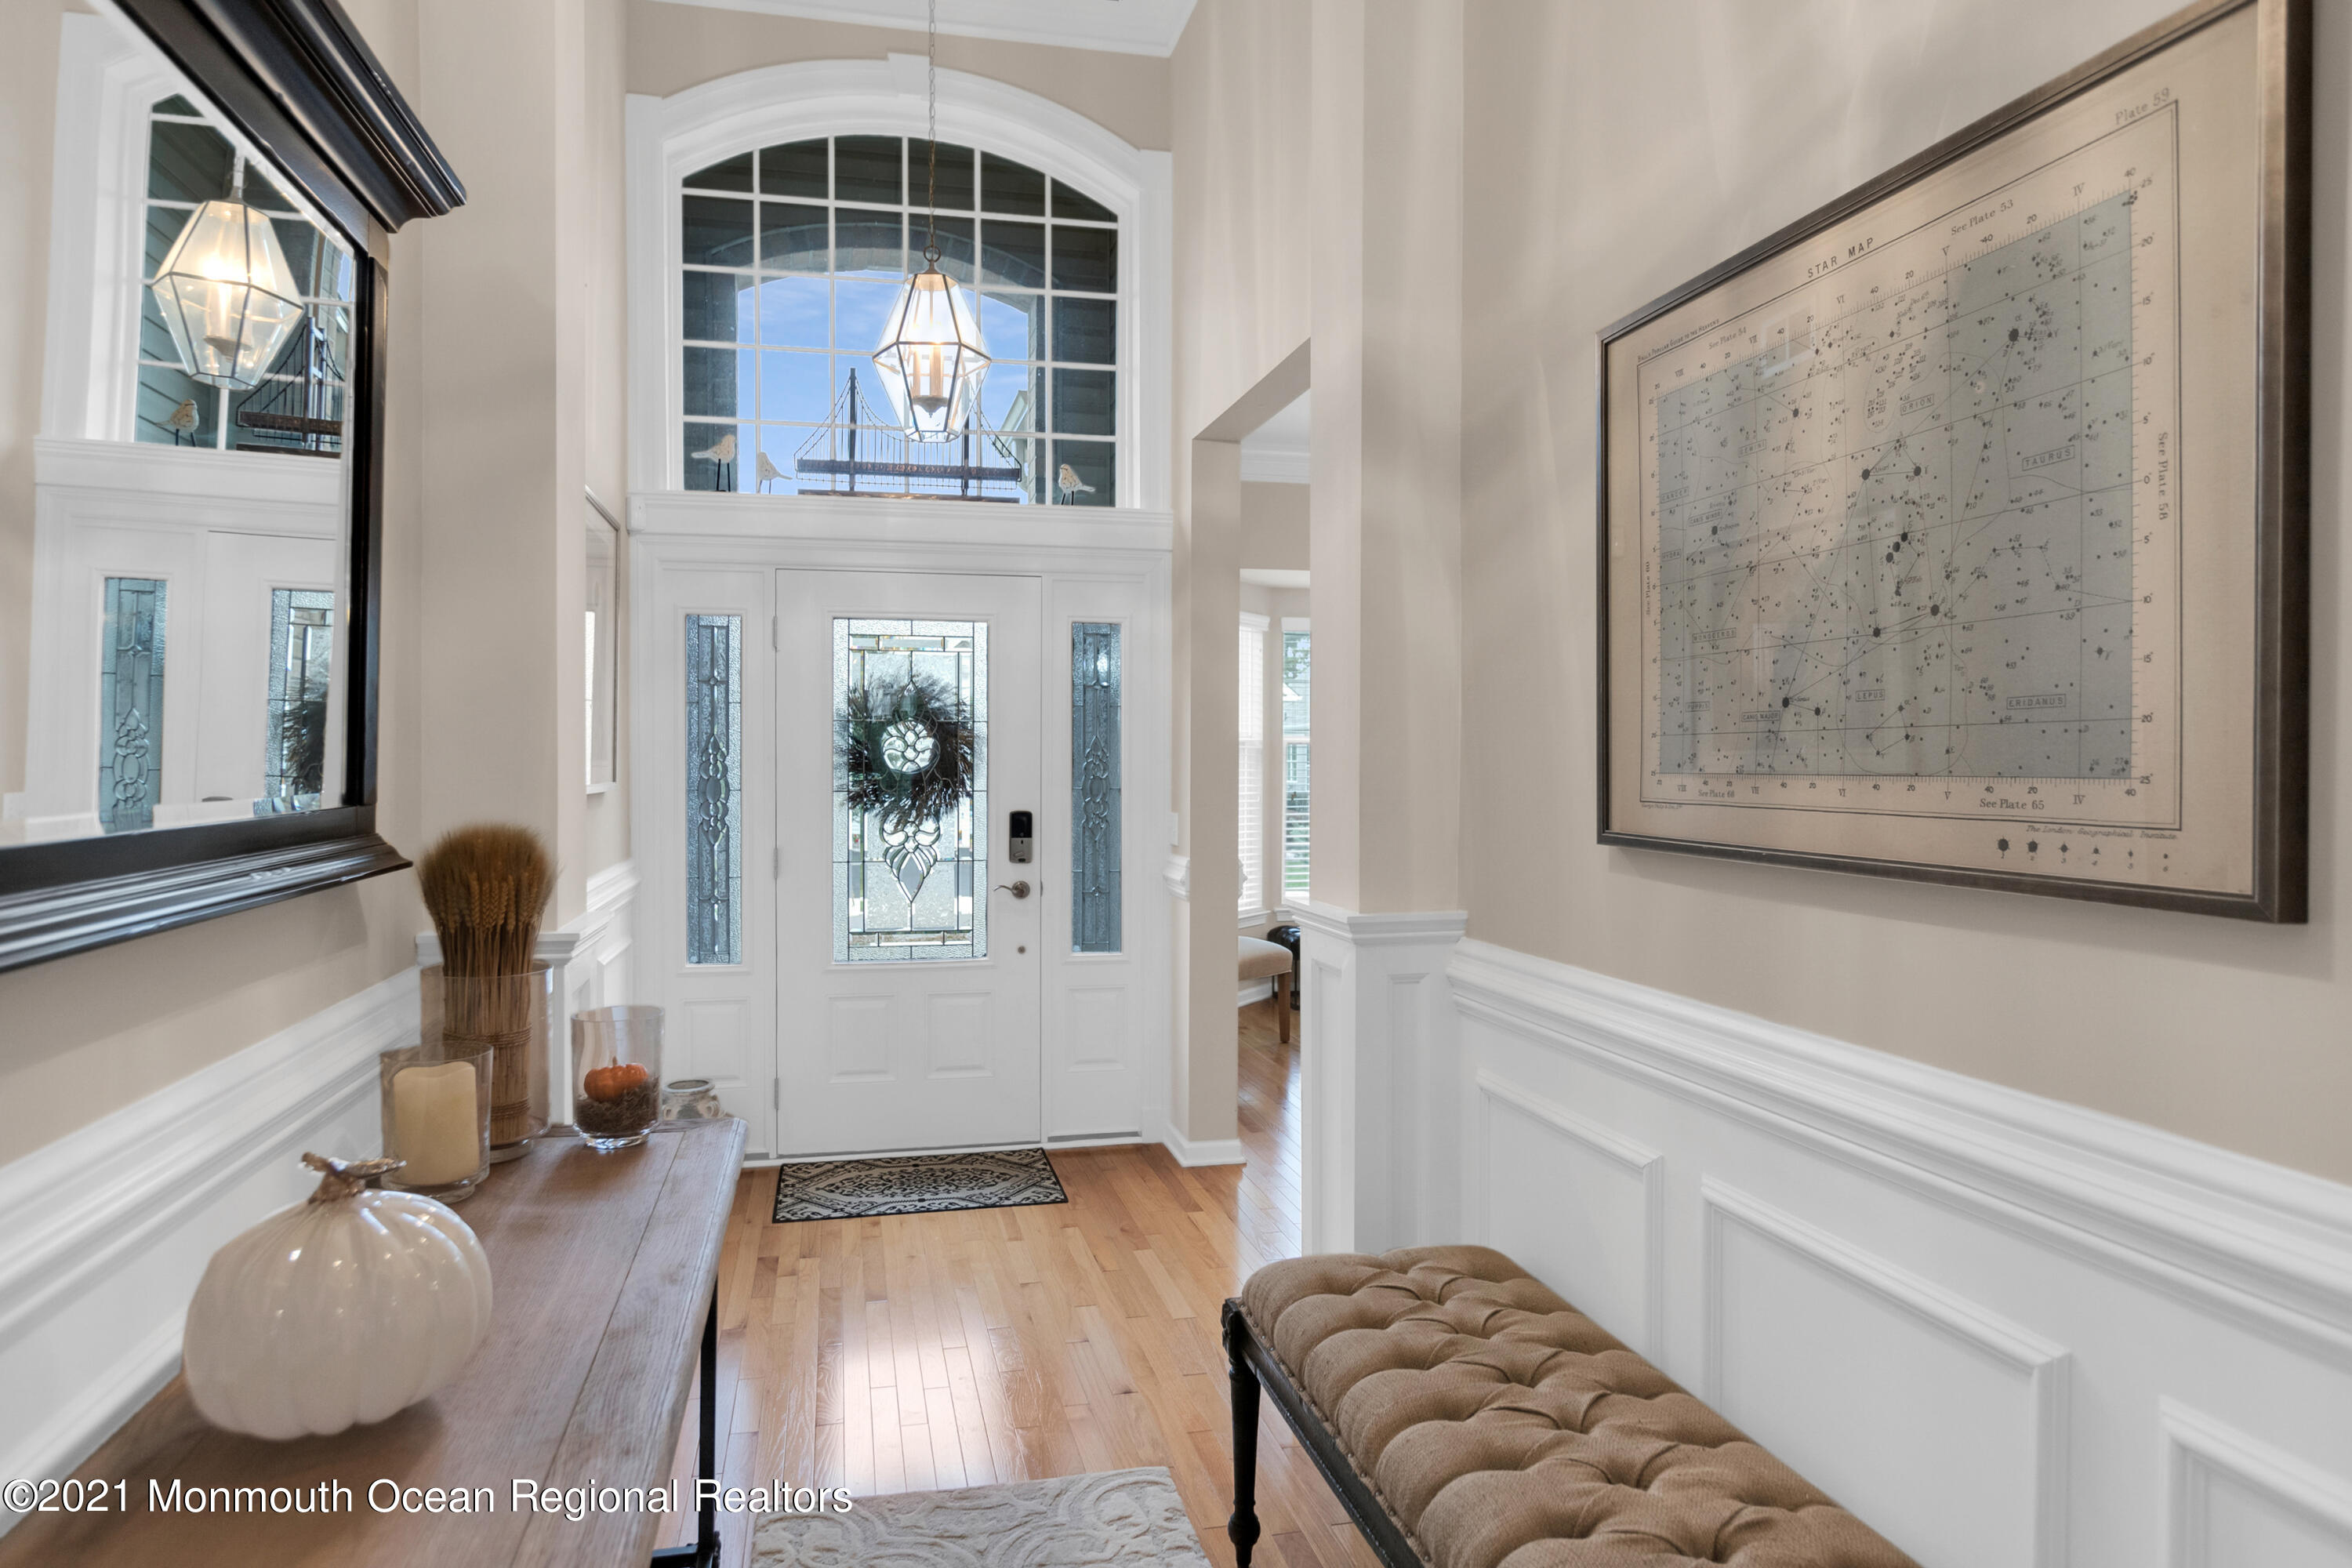 Step into this elegant home which greets you with a grand two-story foyer, open living space, custom moldings, and trim work. Located in a private gated community just off the GS Parkway and just a short ride to Atlantic City, many marinas, shopping, and recreation. This home features a gourmet kitchen with upgraded 42 in. cabinetry, a large pantry, and modern stainless-steel appliances, stunning natural stone countertops with a large peninsula island that opens to the family room. Find hardwood floors throughout the living/family room, dining room, and kitchen. Distinguished 8-foot doors and Custom moldings throughout and 9 ft high space. 2 Bedrooms including a Master suite with tray ceiling, recessed lights and walk-in closet on main floor and an additional bonus study/office.  The main level is completed by a spacious laundry room.  The fully finished basement features a family media center with built-ins and a second Master suite including a master bath and walk in closet. The perfect get-away place for guests.  Decide between relaxation or activity with a full-service Award-Winning Clubhouse which offers a spa, sauna, hot tub, fitness center, craft room, art room, library, pool tables, card room, shuffleboard, putting green, horseshoe, bocce courts, tennis, coffee station, outside fireplace, a heated pool, and many other amenities.  Or, just relax on your private covered patio overlooking the wooded area, ideal for your morning coffee or for outdoor entertaining.  There is so much to see.  You won't be disappointed!  Make your appointment today!